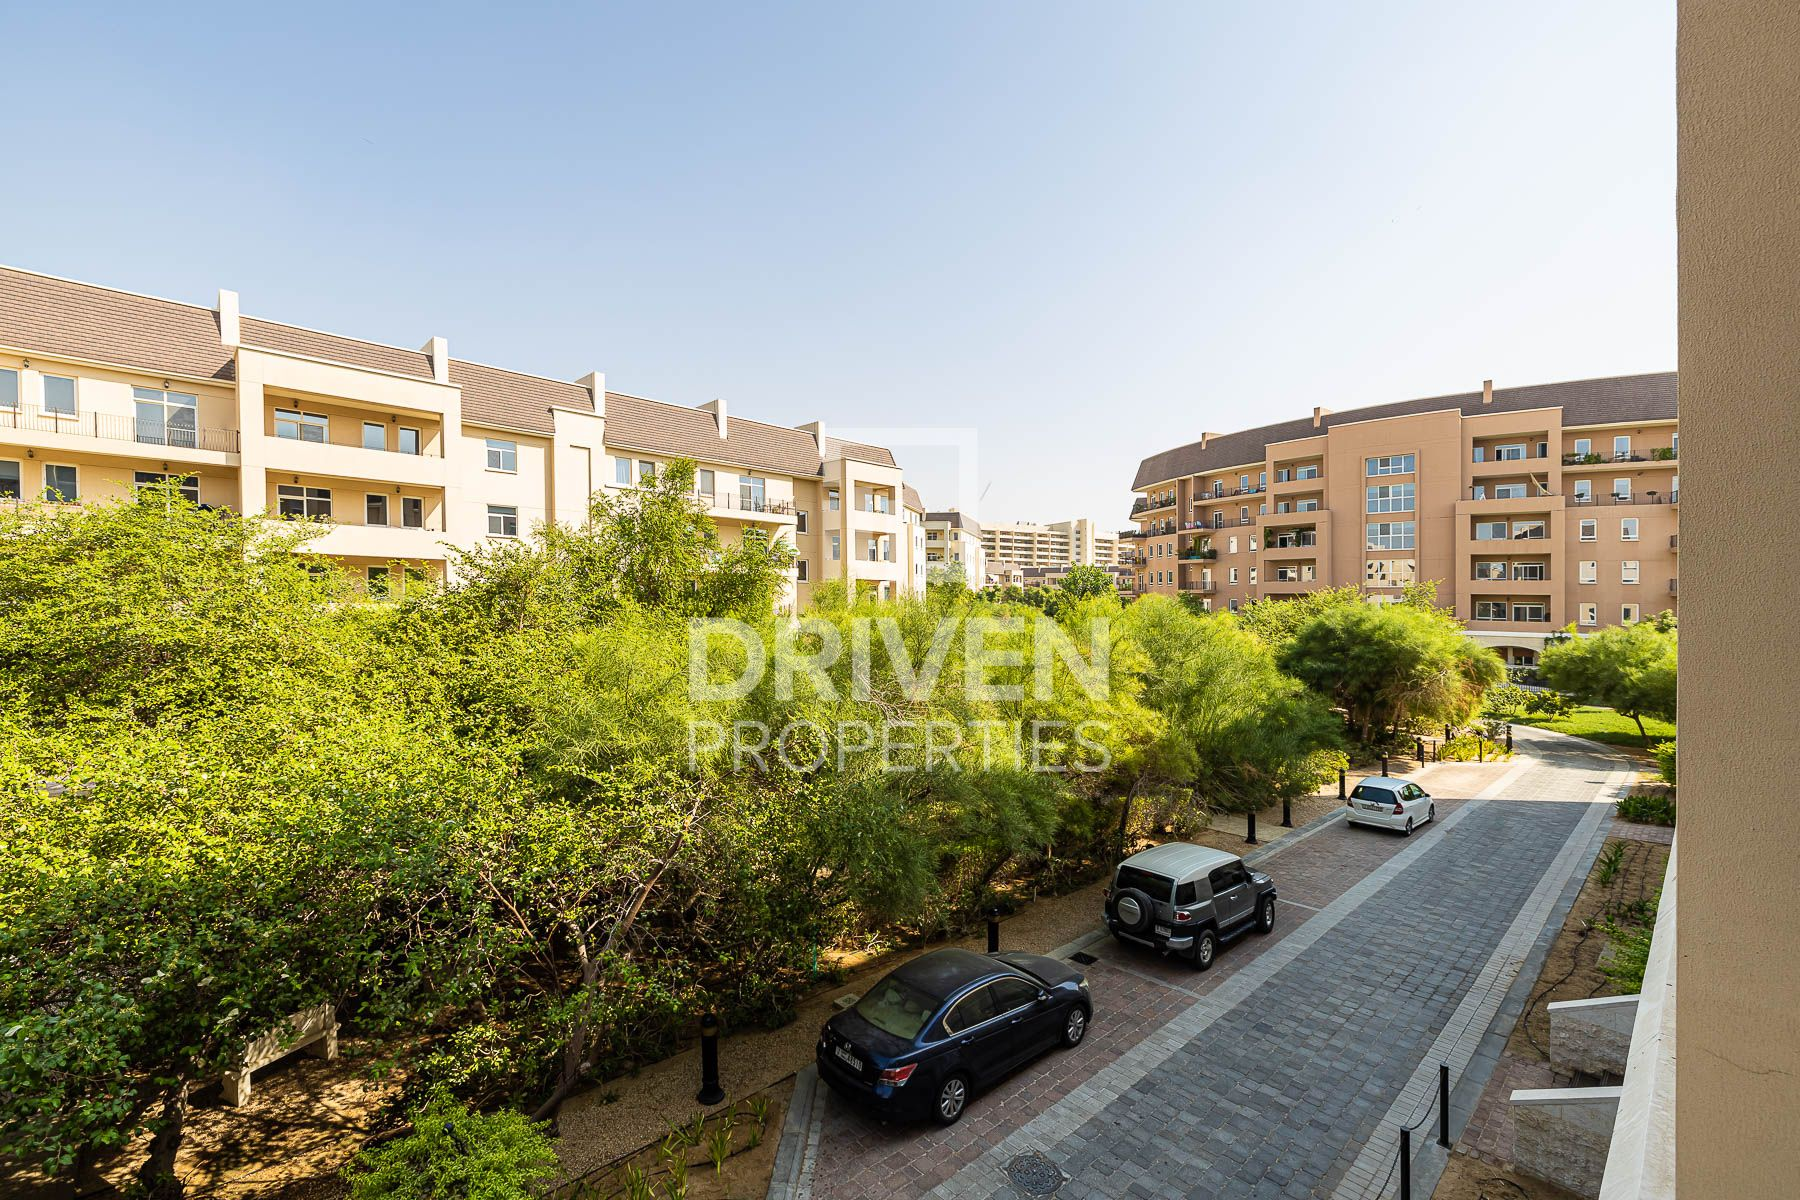 Courtyard and Garden View | Private Balcony